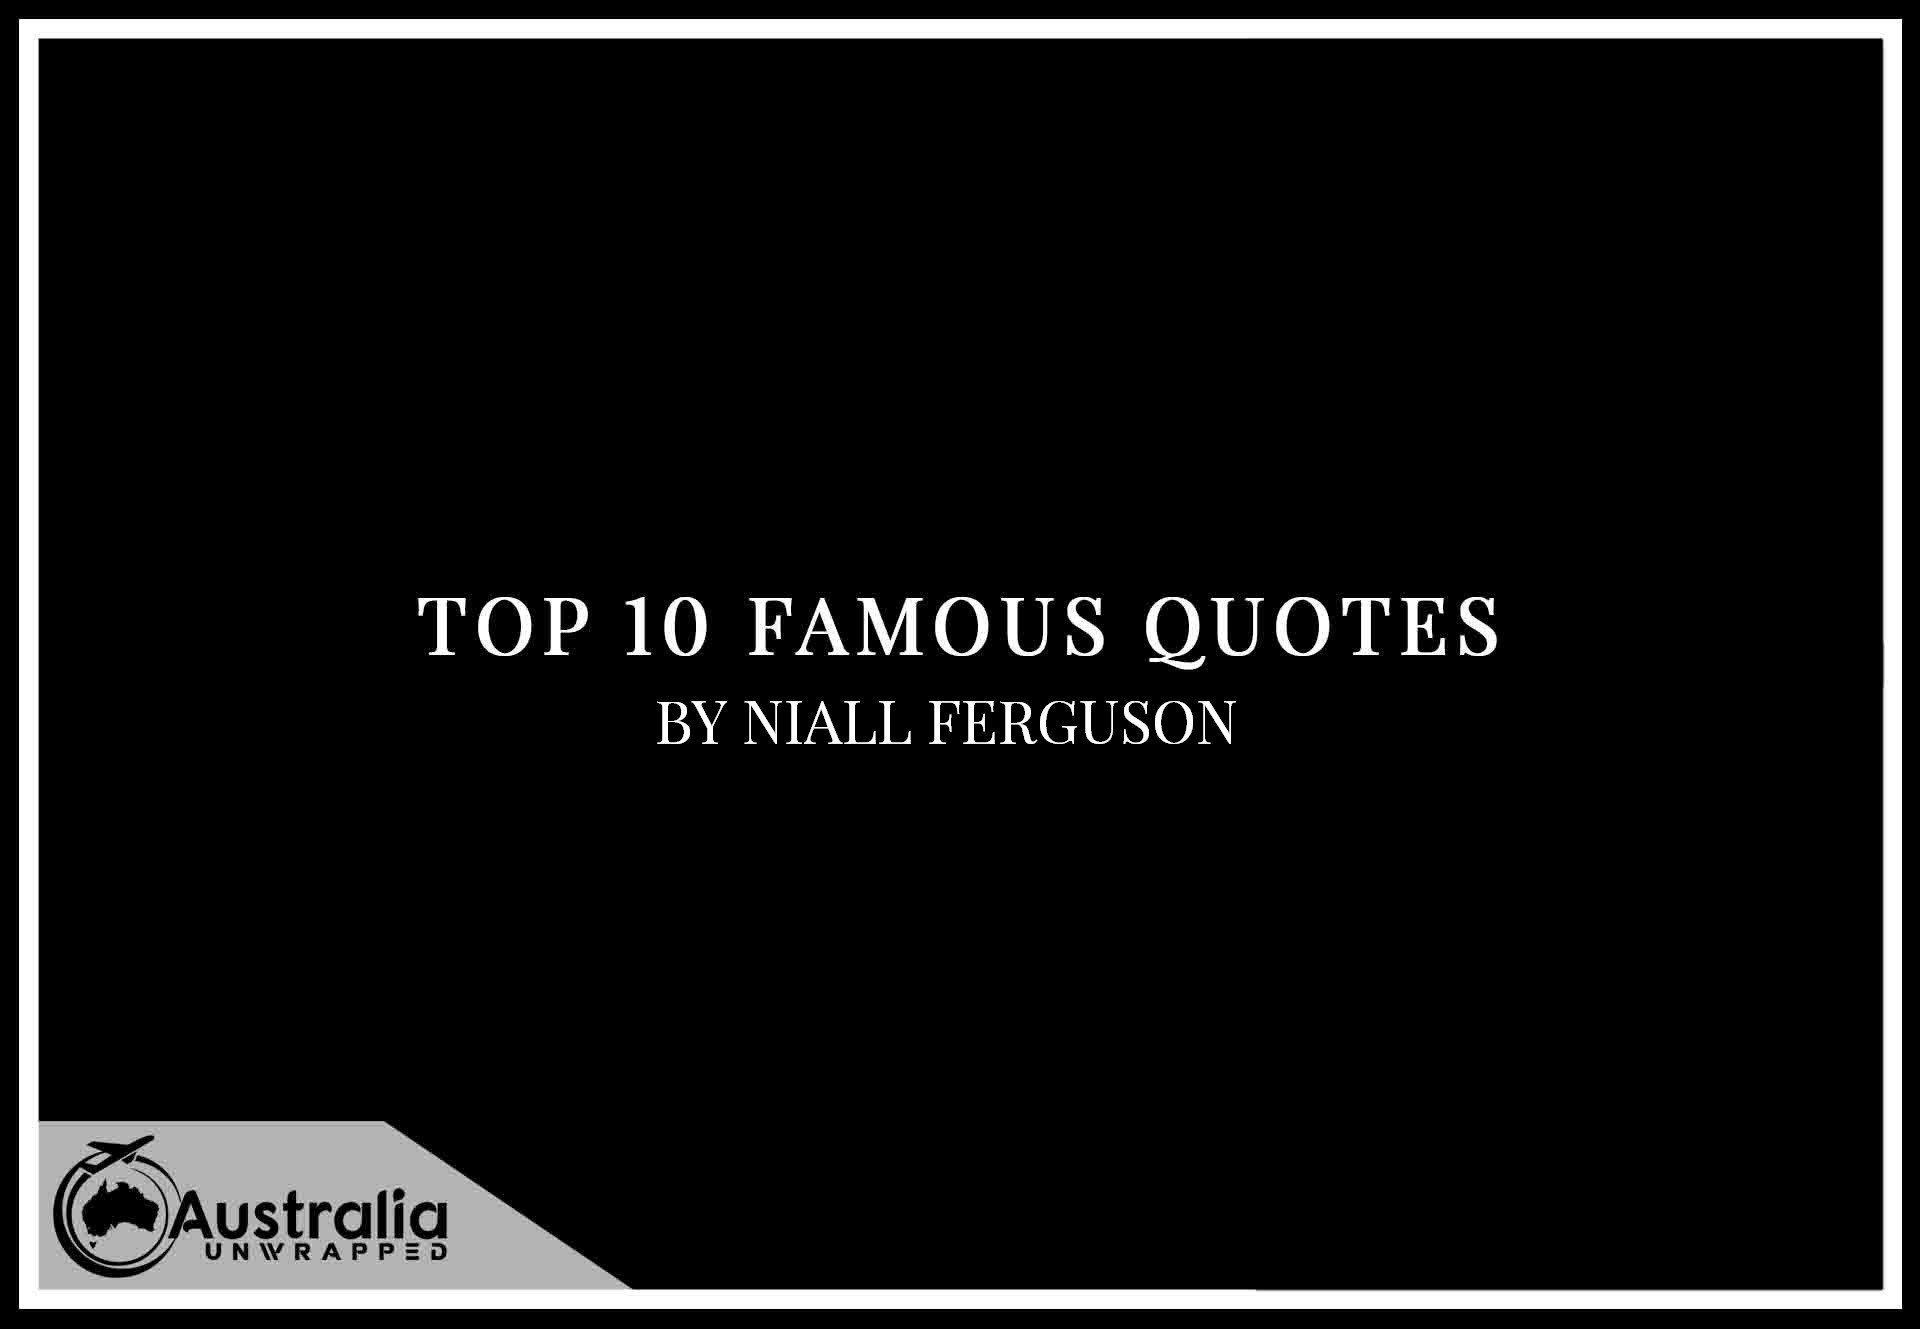 Top 10 Famous Quotes by Author Niall Ferguson